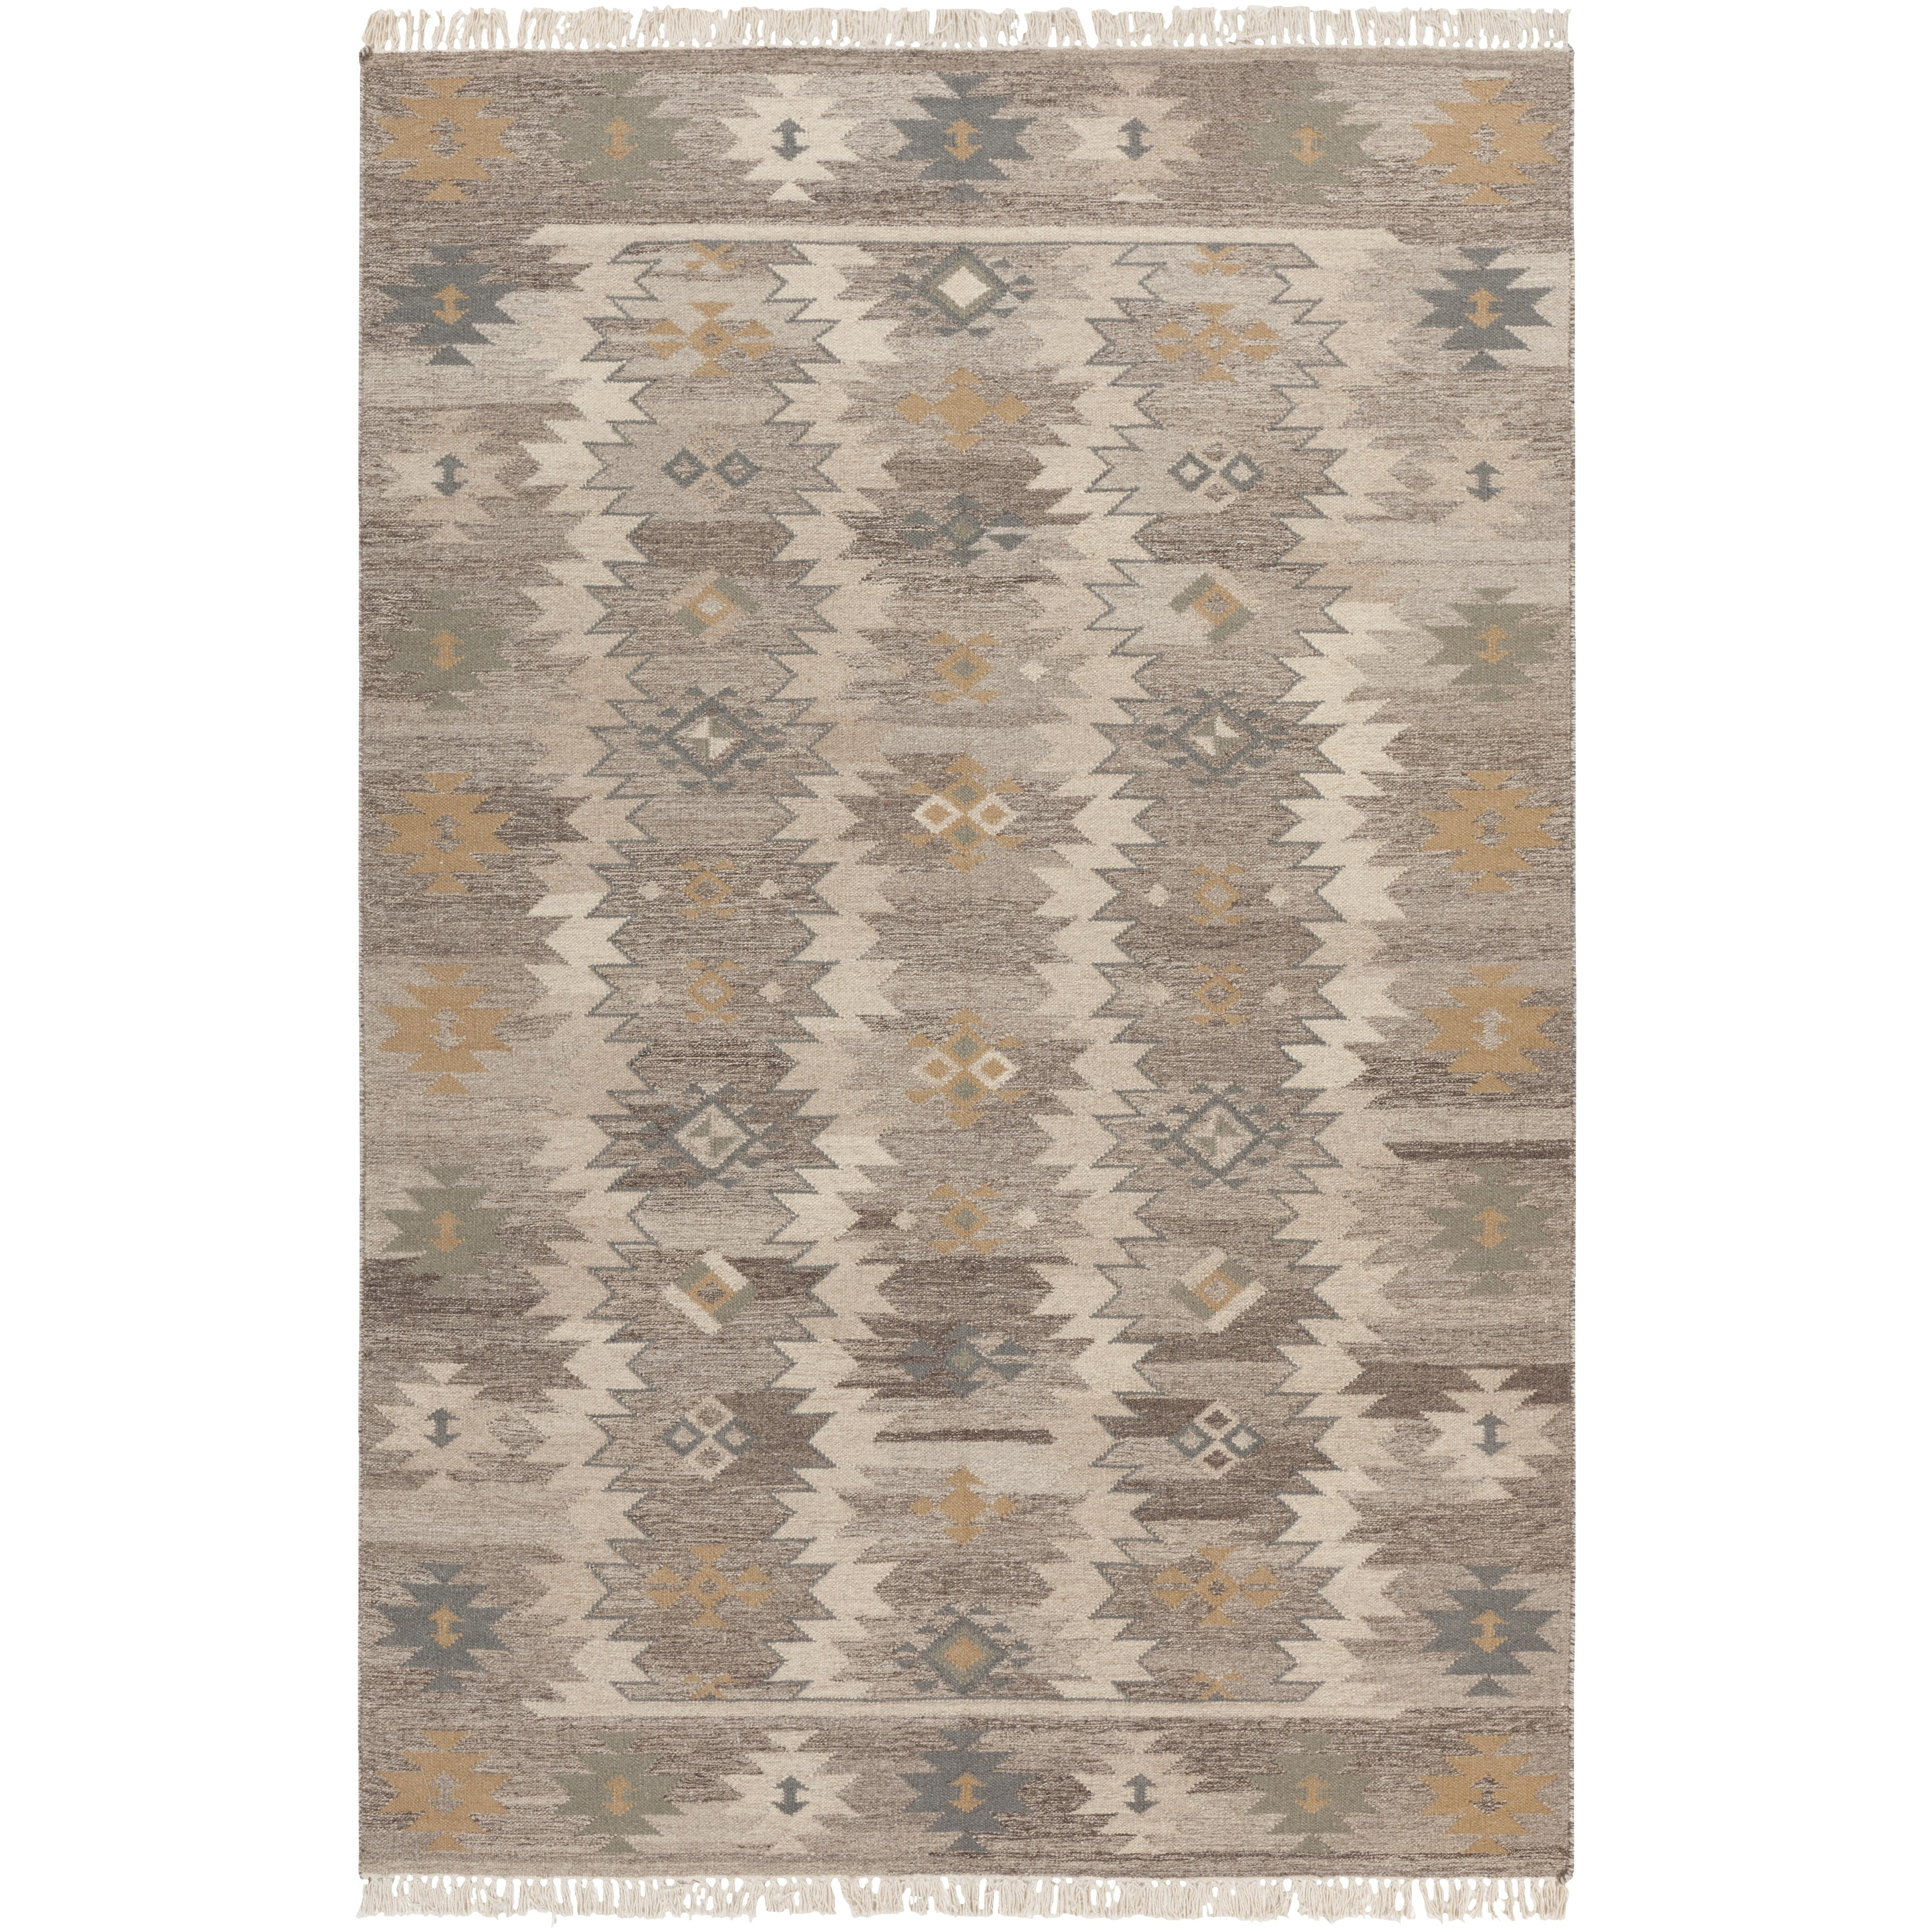 Surya Rugs Jewel Tone II 2' x 3' - Item Number: JTII2047-23